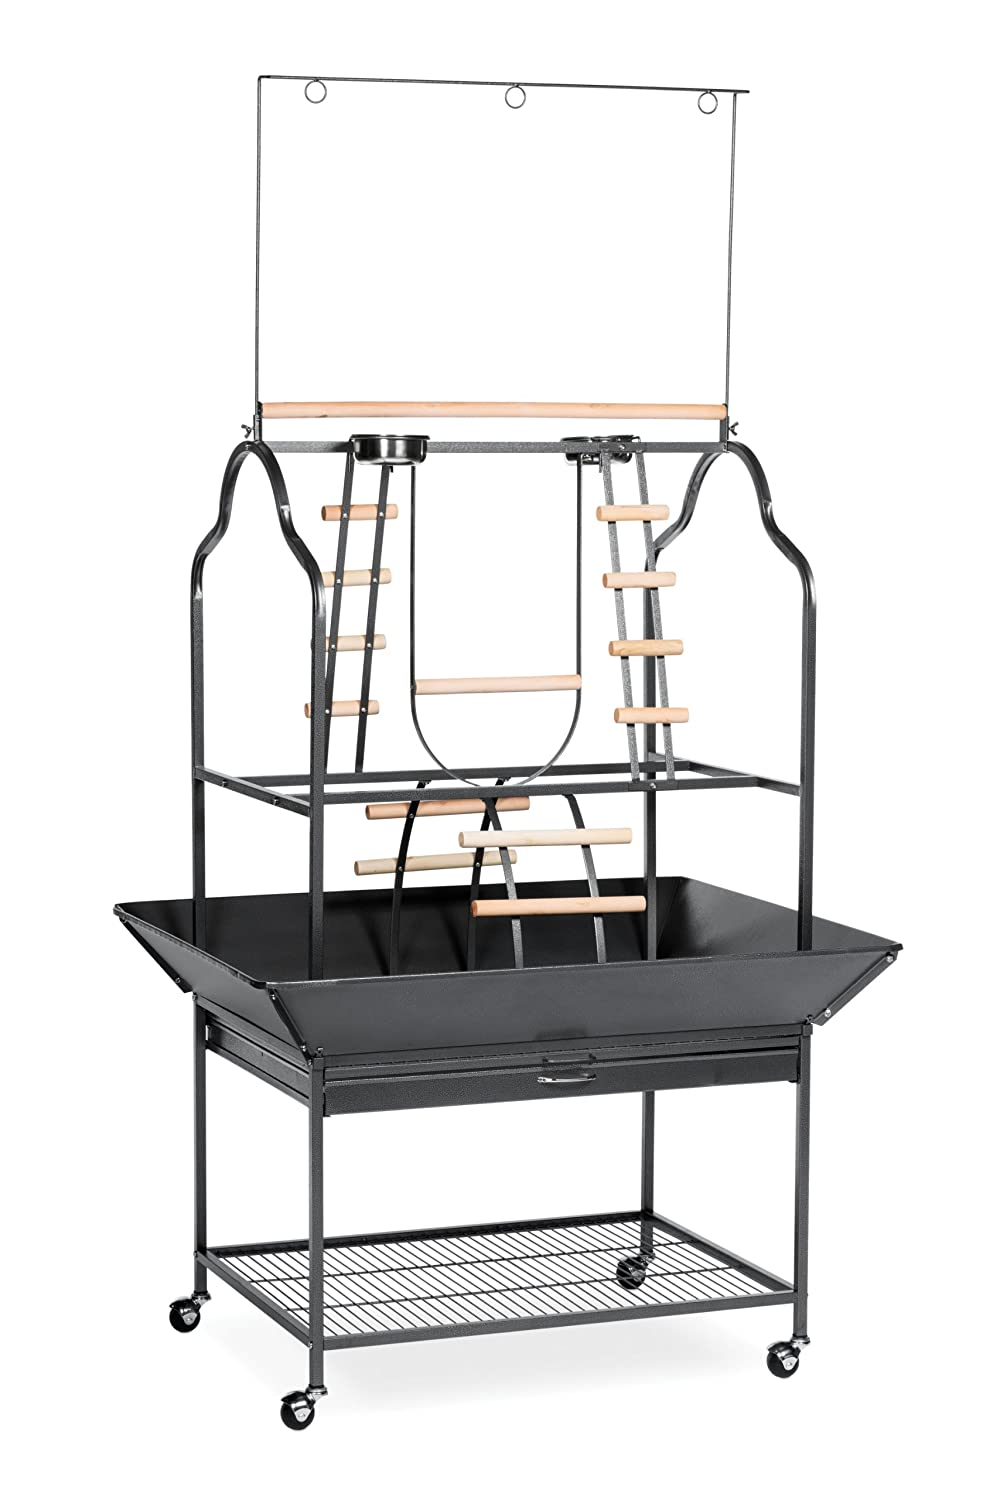 Prevue Hendryx 3180 Pet Products Parrot Playstand, Black Hammertone Prevue Pet Products Inc. 3180BLK